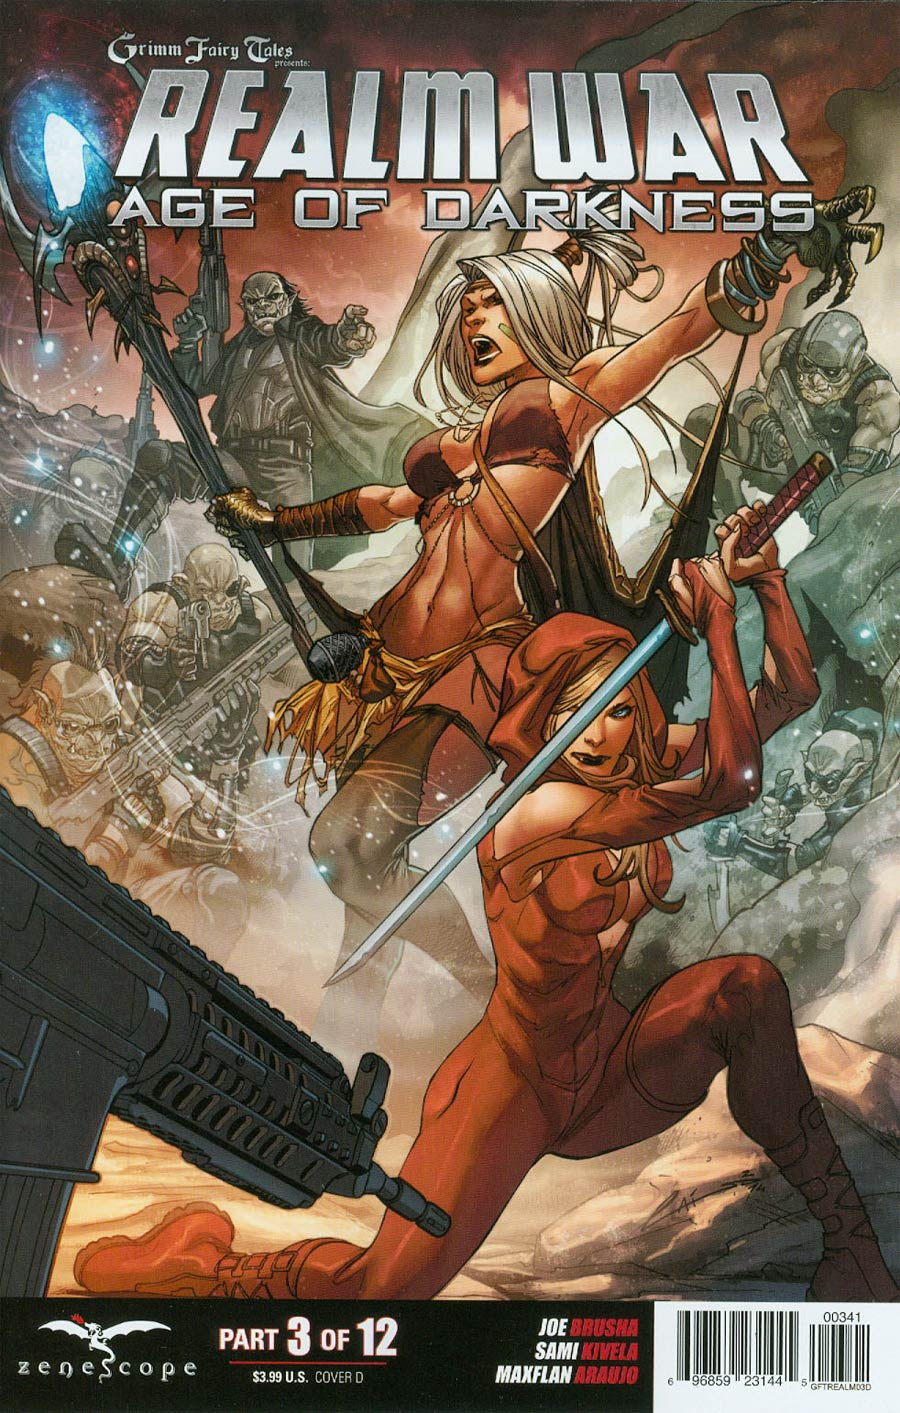 Grimm Fairy Tales Presents Realm War #3 Cover D Emilio Laiso (Age Of Darkness Tie-In)